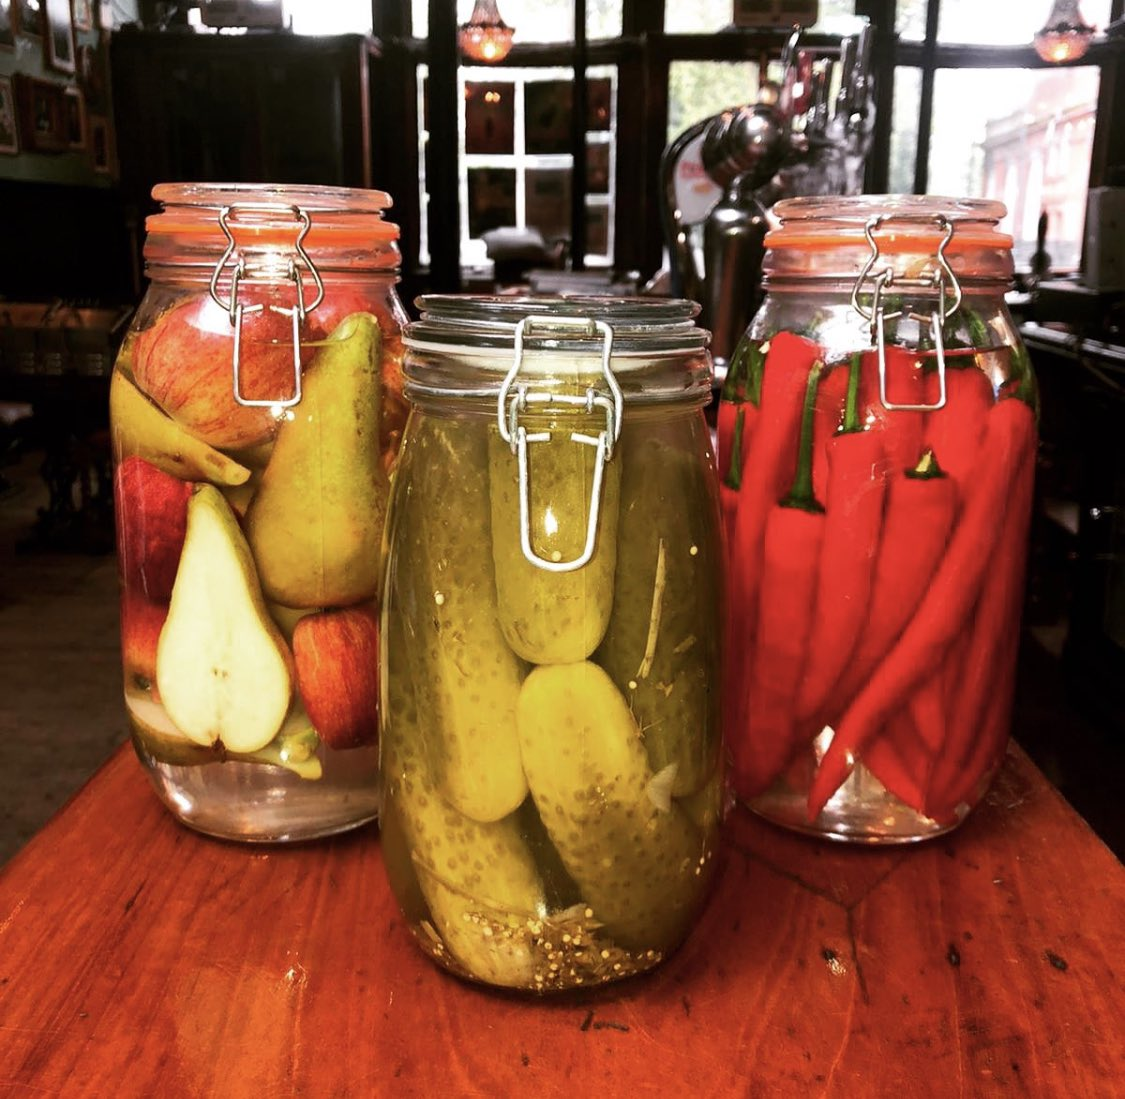 The pickle family are back!!!!  . Get ready to taste our new recipes when we fully open on the 20th July 🙌🏽 . #pickles #barsnack #picklelover #pickleme #spicypickle #newmenuitem #yummy #foodie #highbury #upperstreet #foodlover #pickledveggies #picklesarelife #traditionalpub https://t.co/RkKaRX01xd